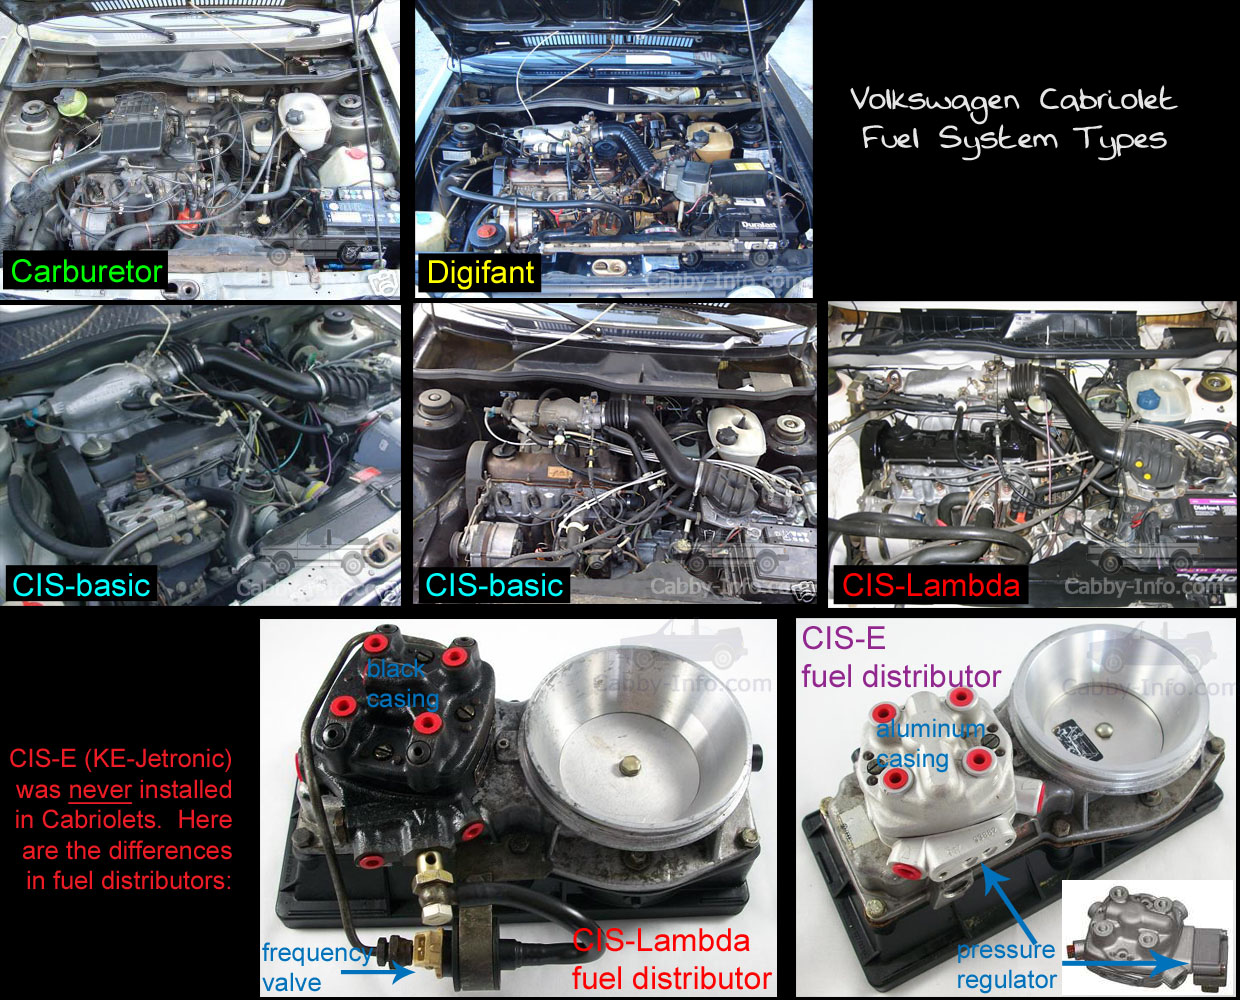 2002 Vw Cabrio Engine Diagram Volkswagen